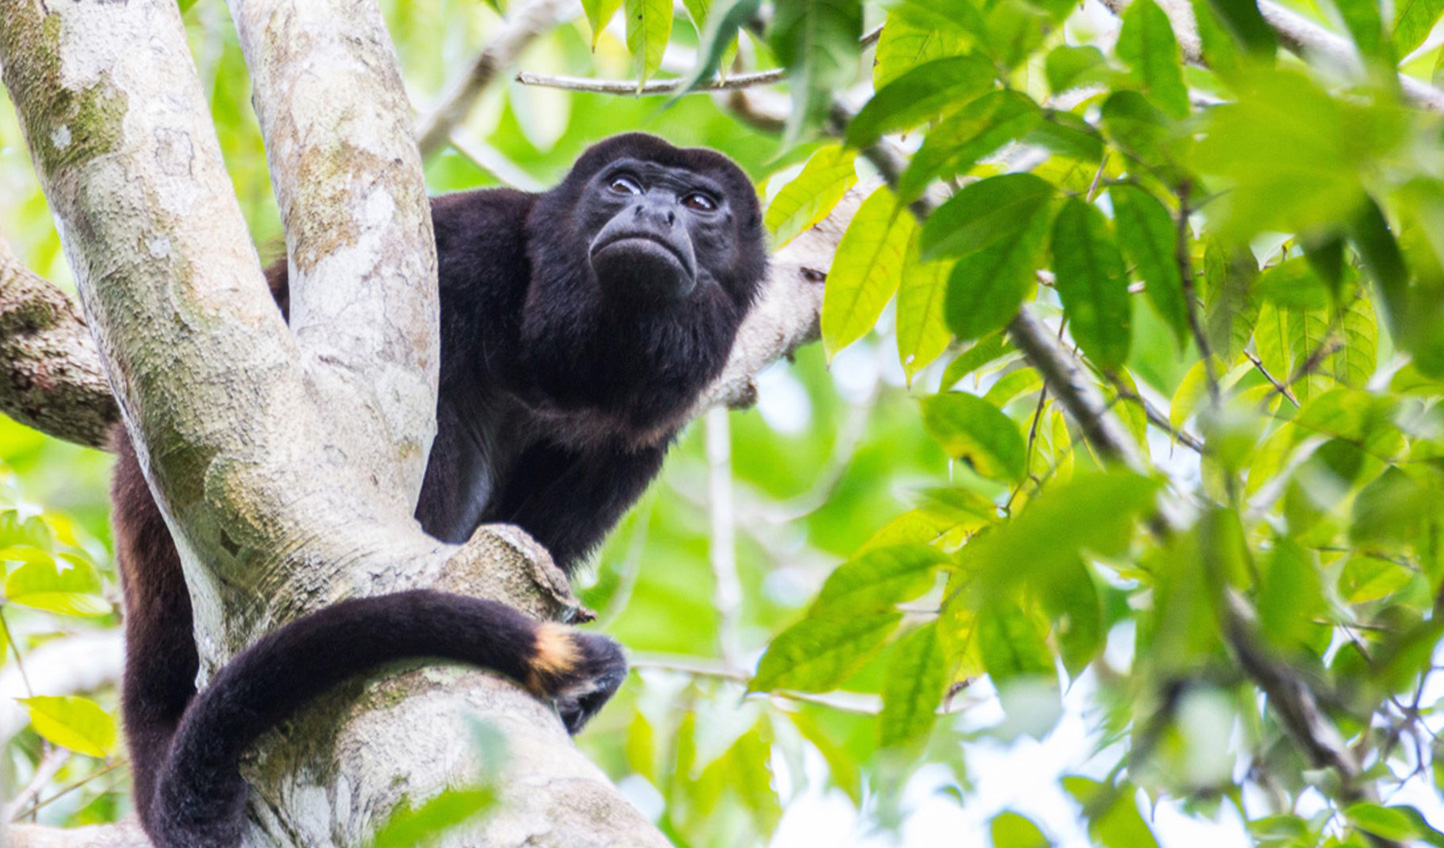 Keep your eyes peeled for the local howler monkeys